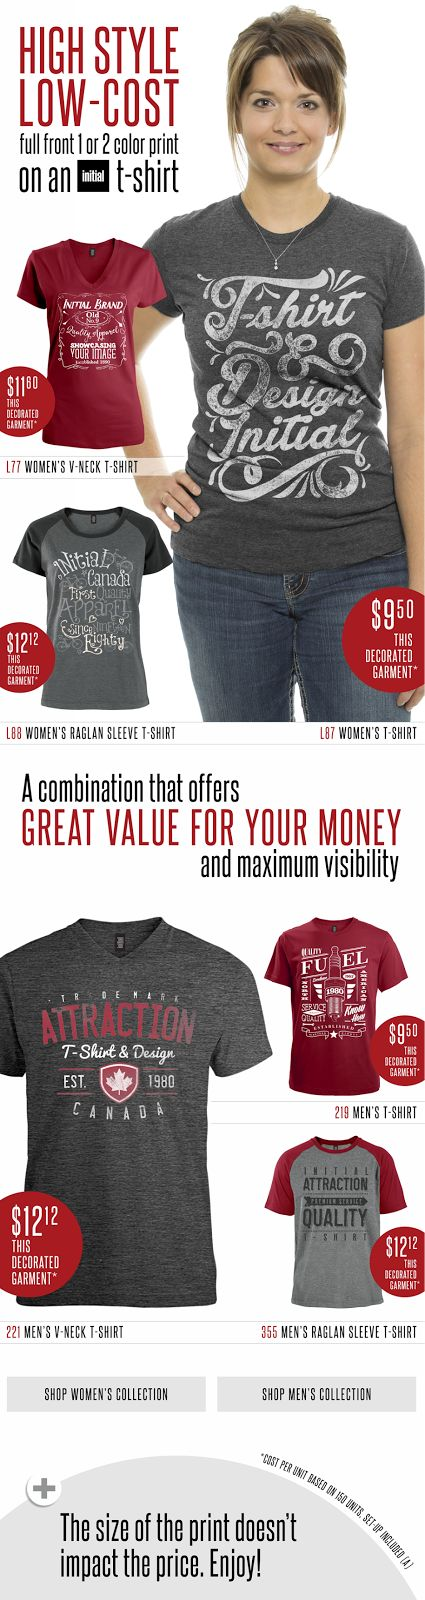 Attraction Inc.: HIGH STYLE, LOW-COST: FULL FRONT 1 OR 2 COLOR PRINT ON AN INITIAL T-SHIRT